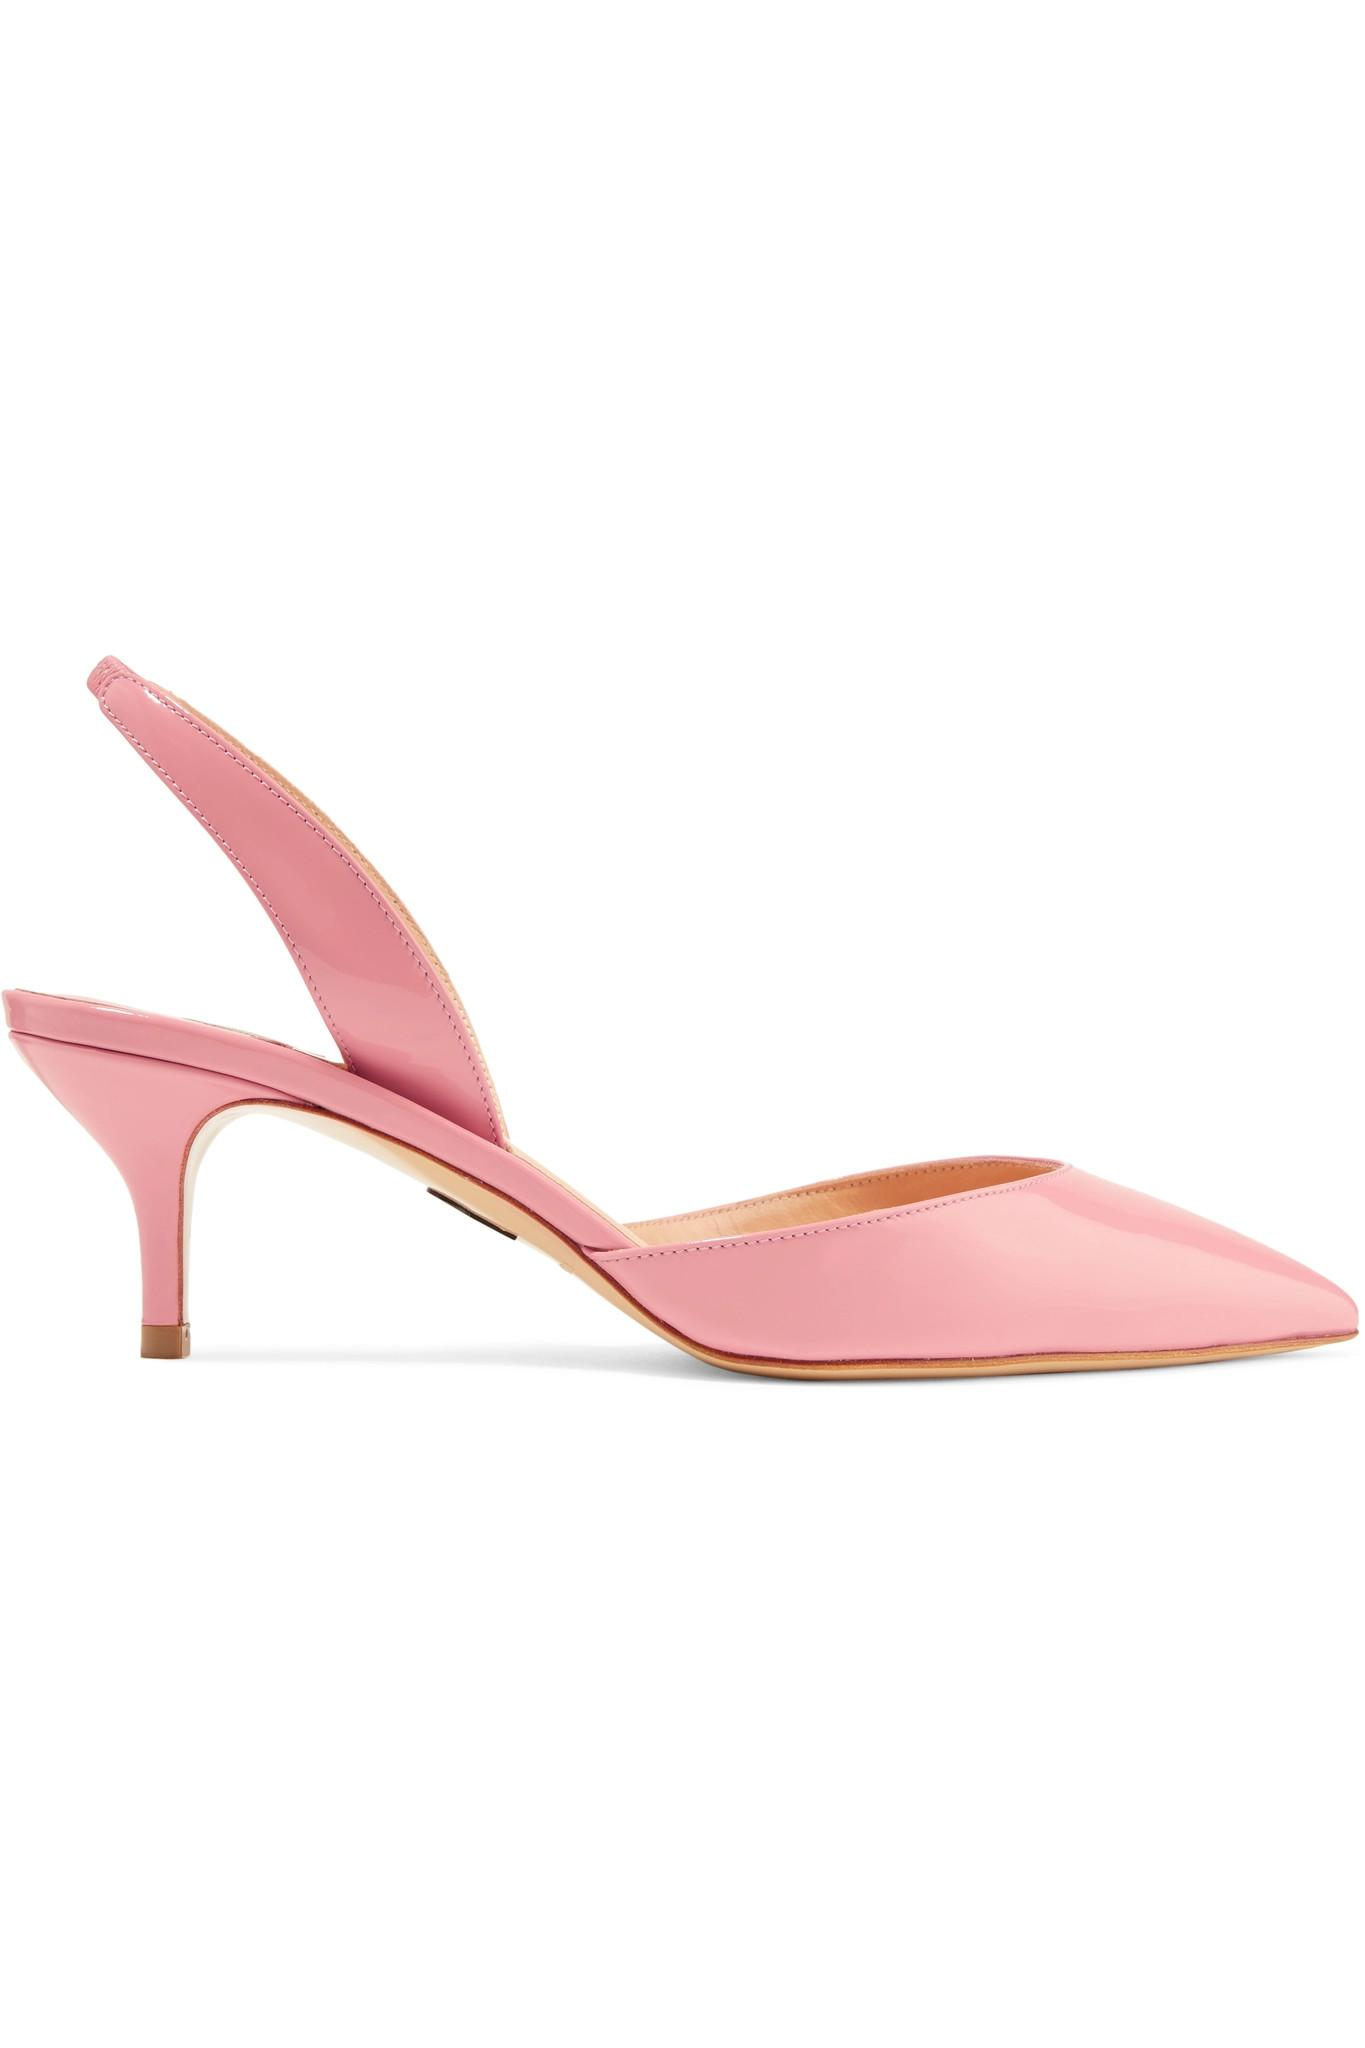 Rhea Patent-leather Slingback Pumps - Baby pink PAUL ANDREW O1Brk